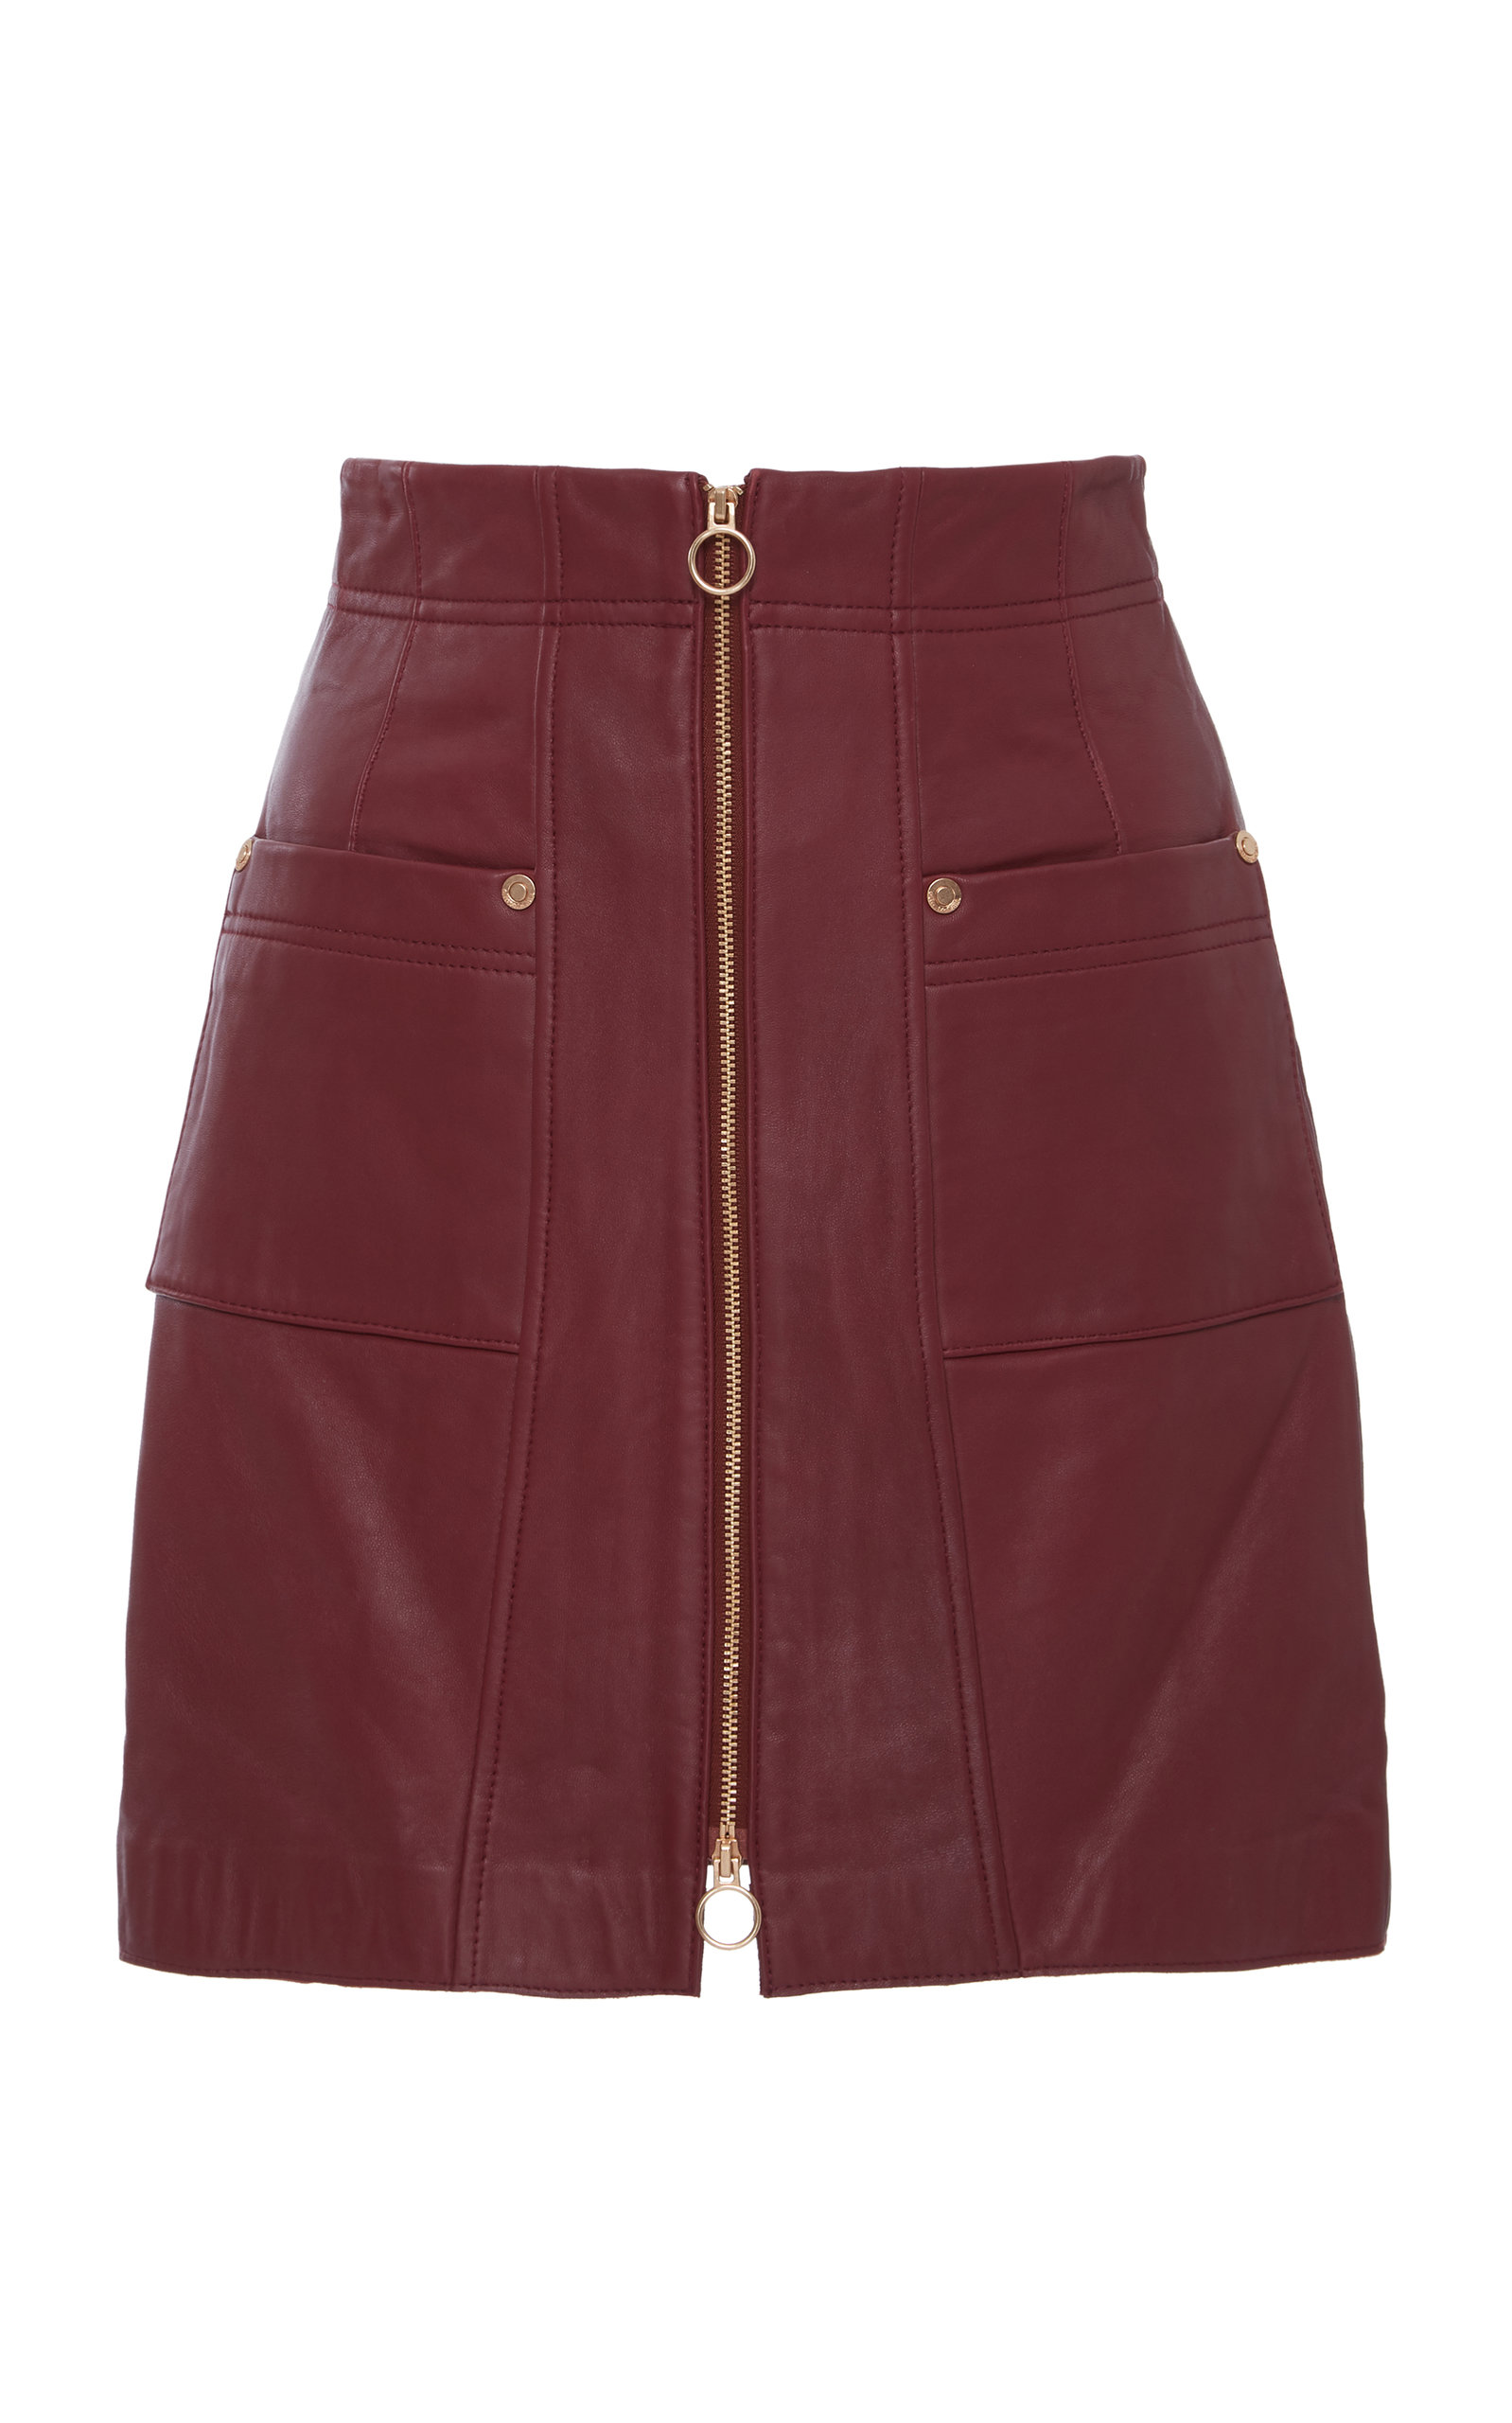 ALICE MCCALL Make Me Yours Leather Mini Skirt in Red